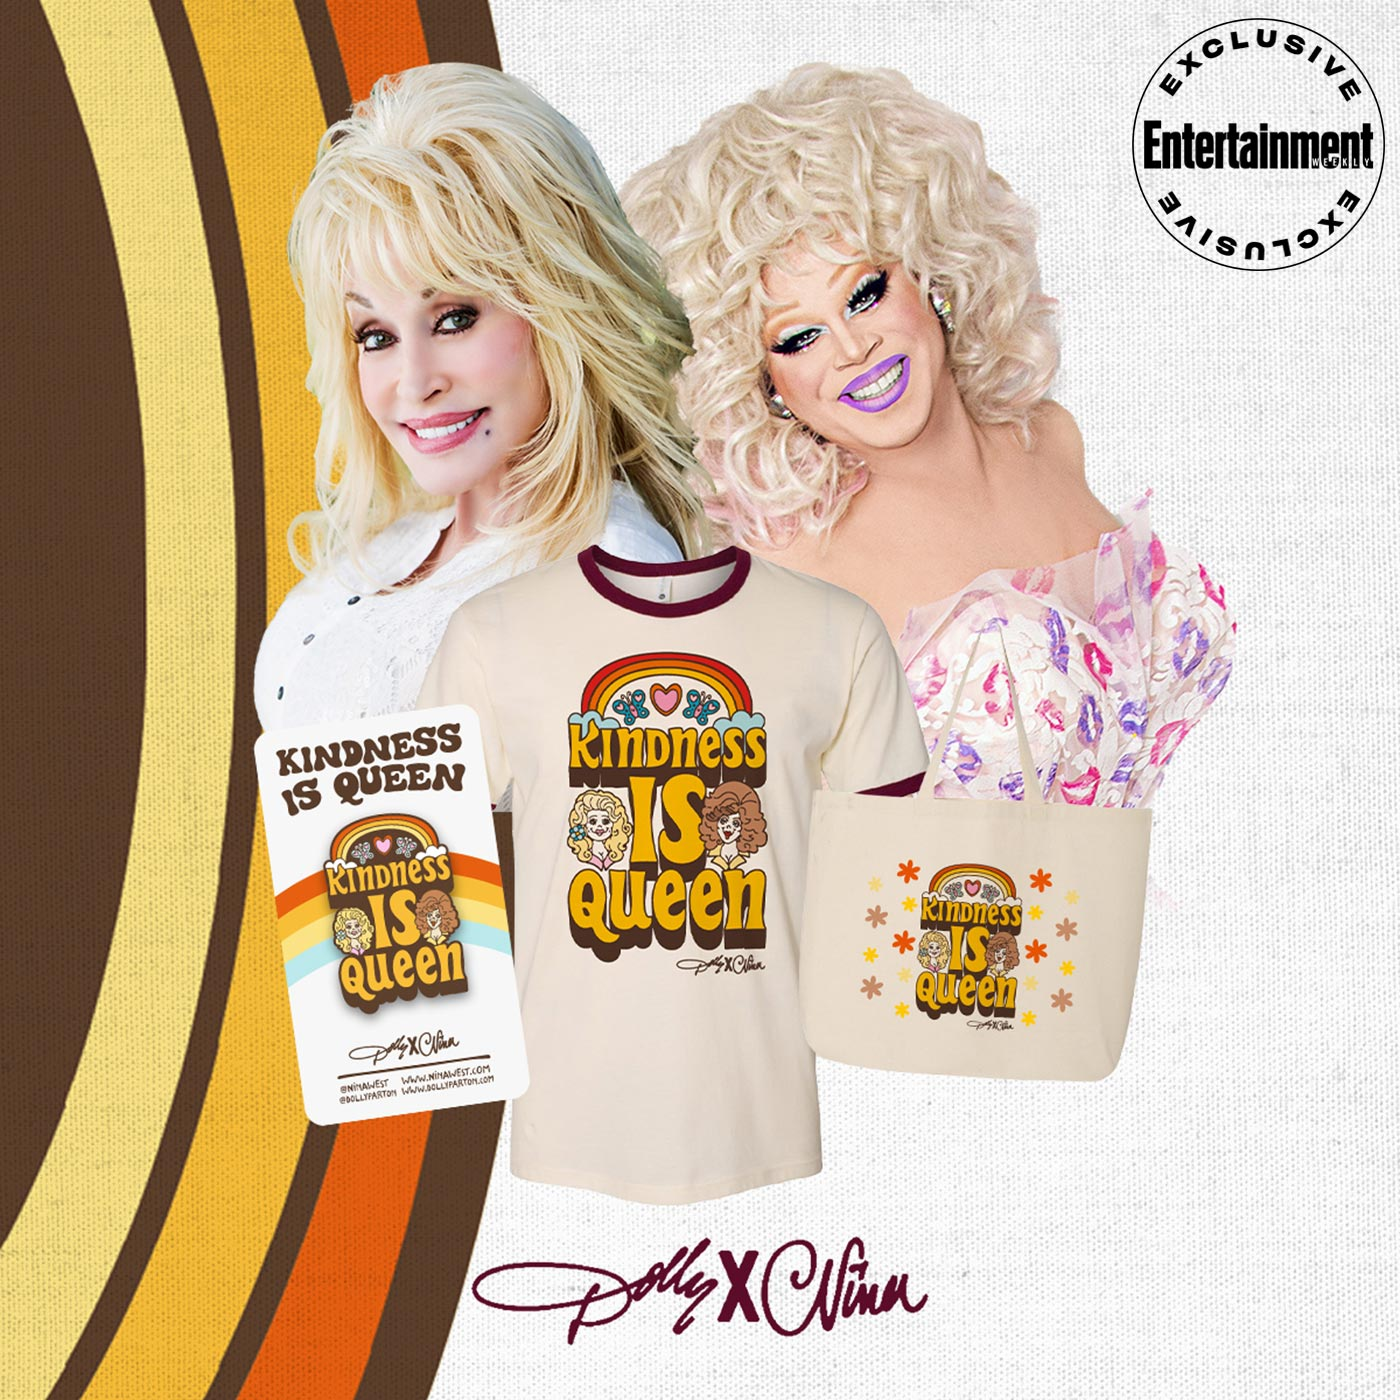 "NINA WEST AND DOLLY PARTON TEAM UP FOR ""DOLLY X NINA: KINDNESS IS QUEEN"" COLLECTION"